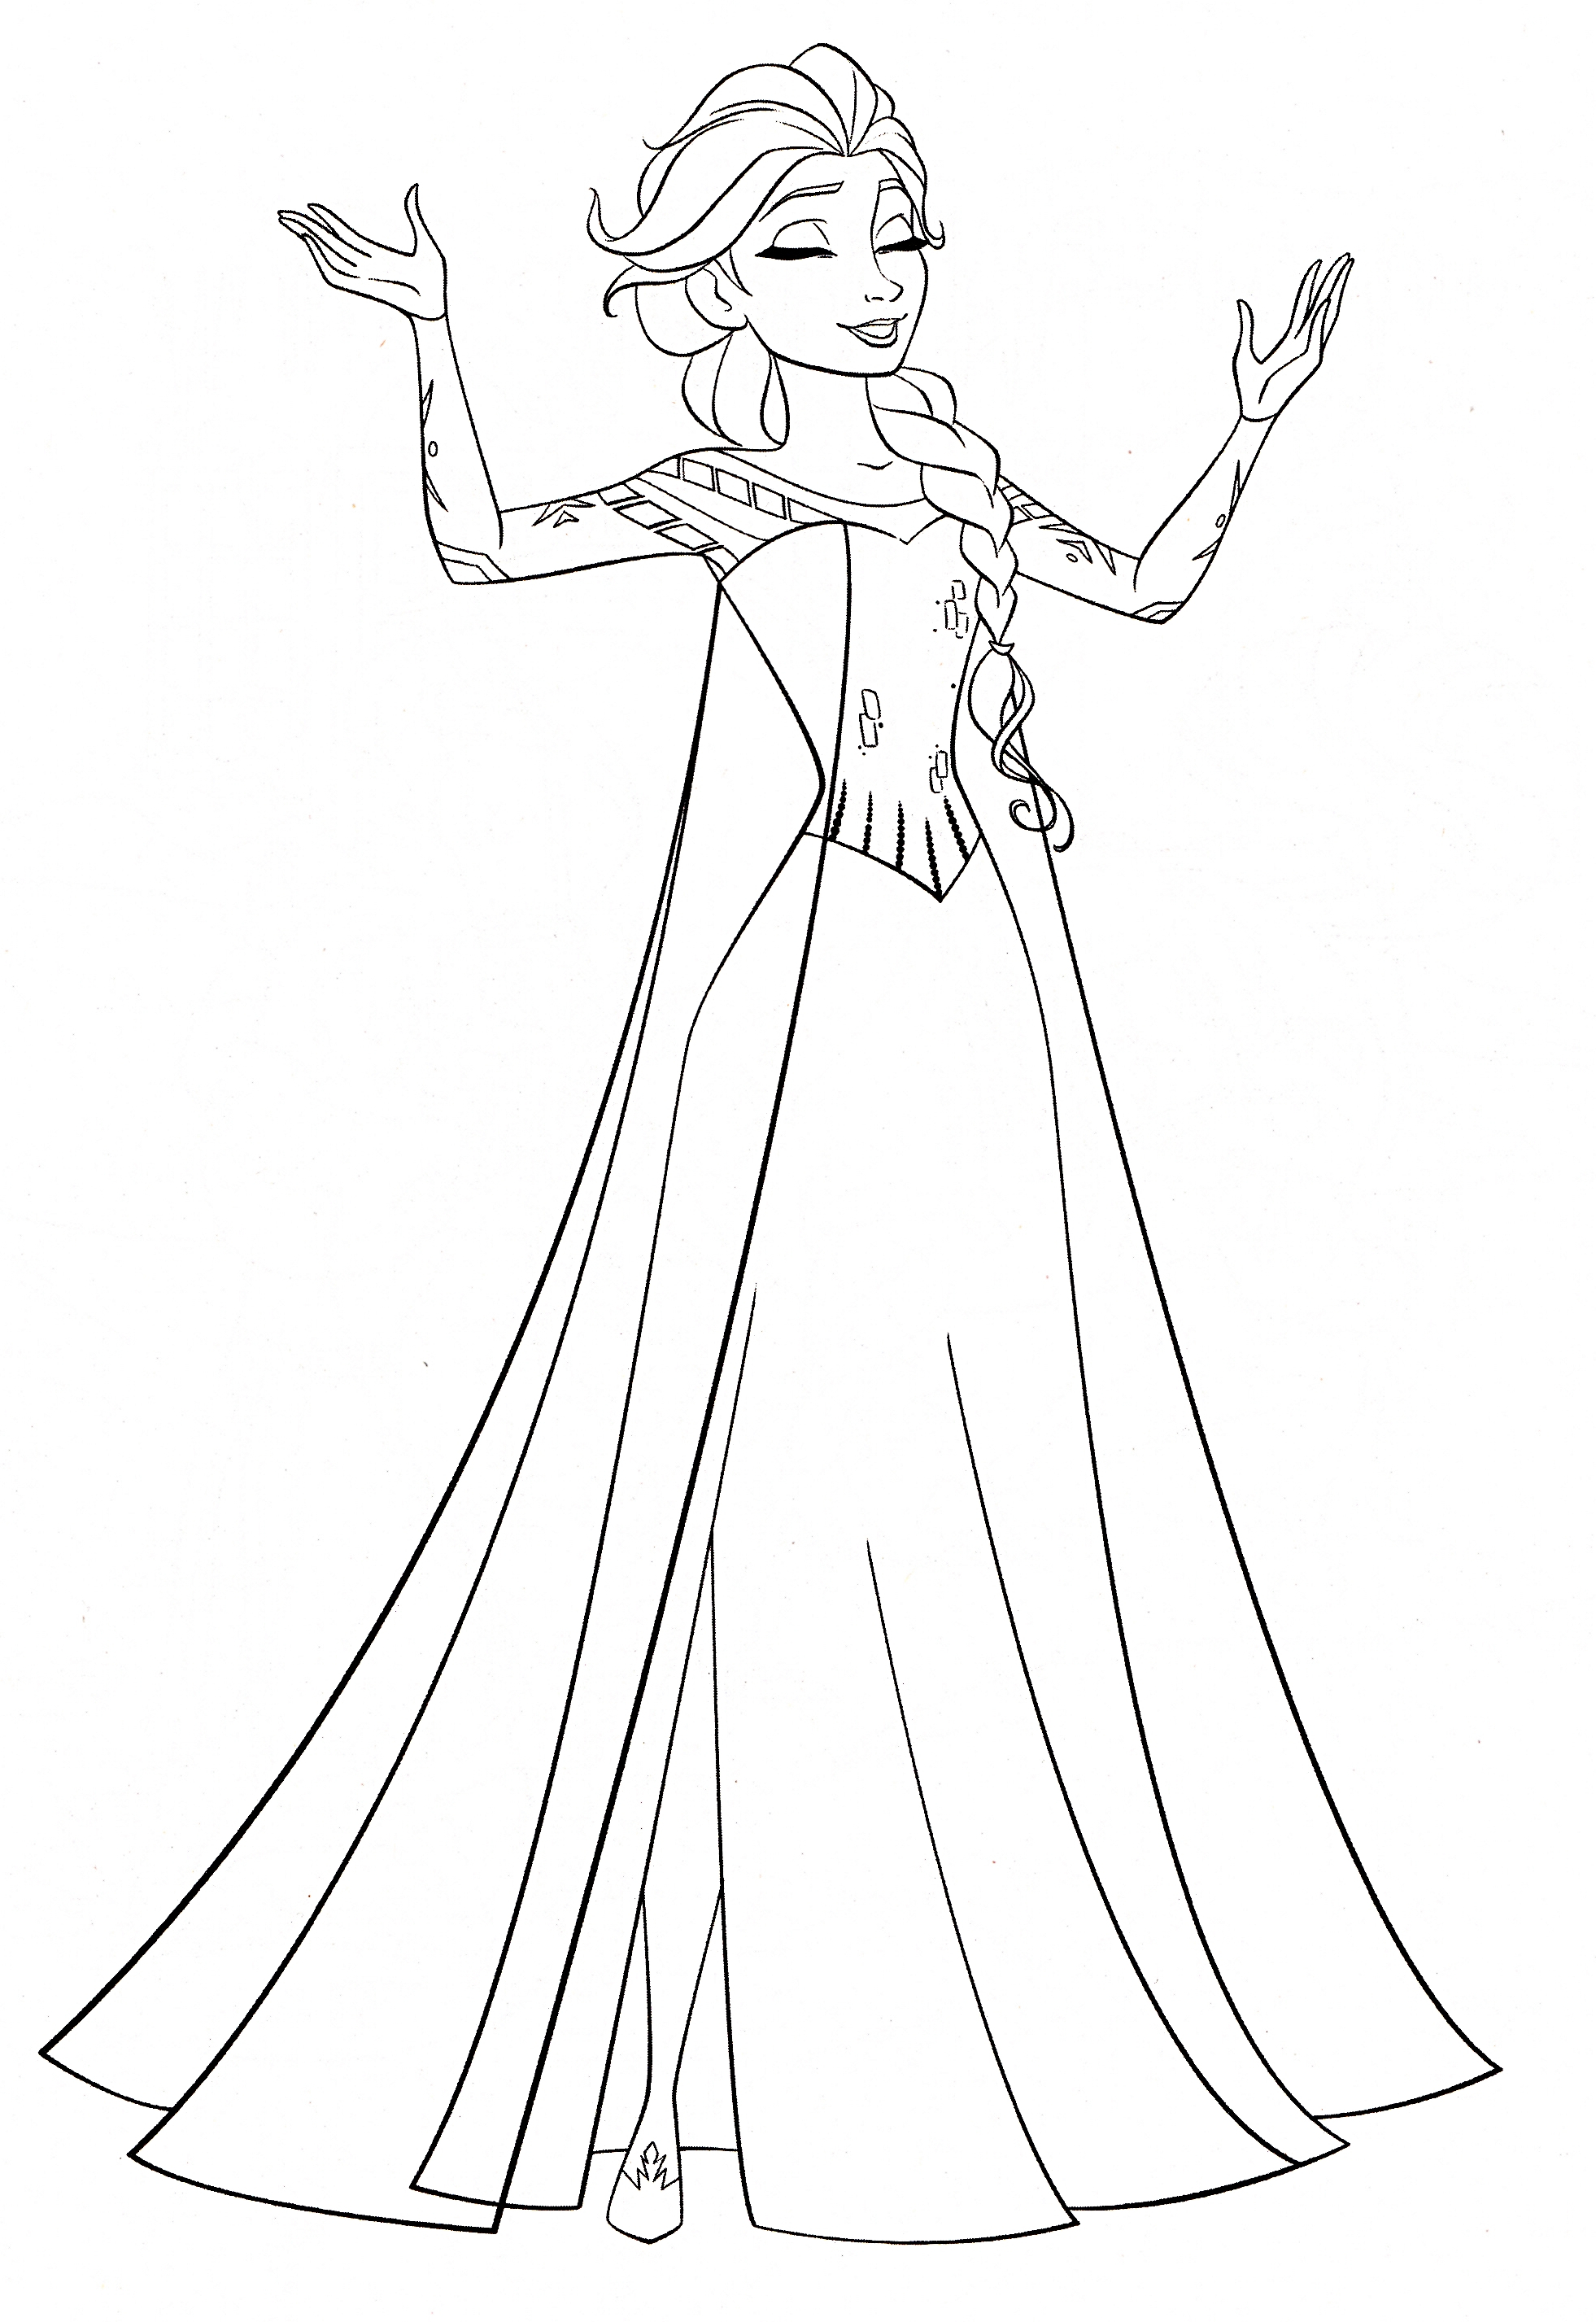 Frozen Coloring Pages Elsa Best Free 807 Download Of Disney Princess